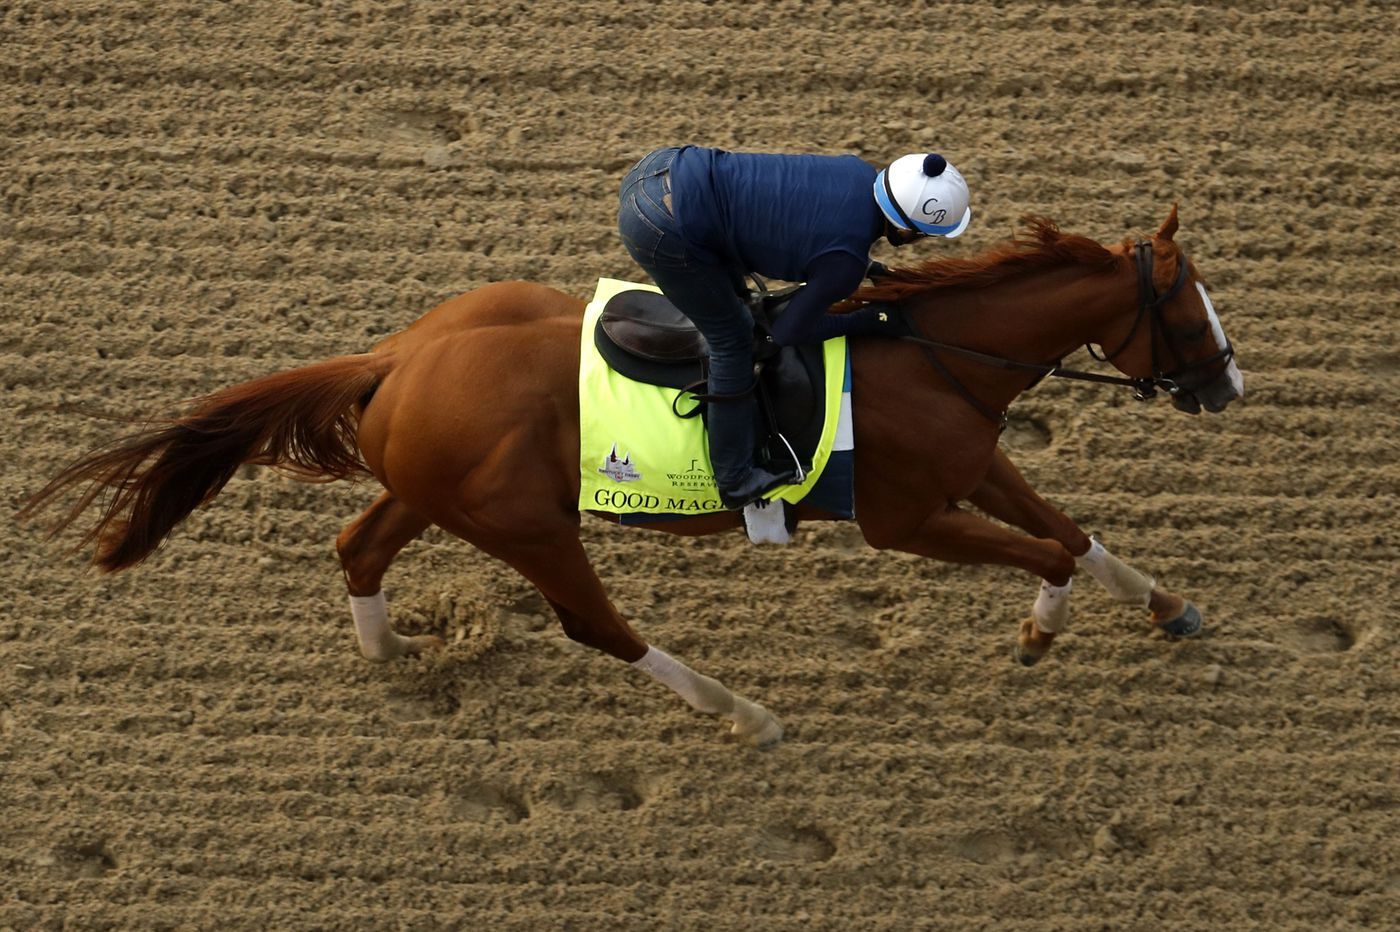 With Justify retired, Good Magic is the favorite for Sunday's Haskell